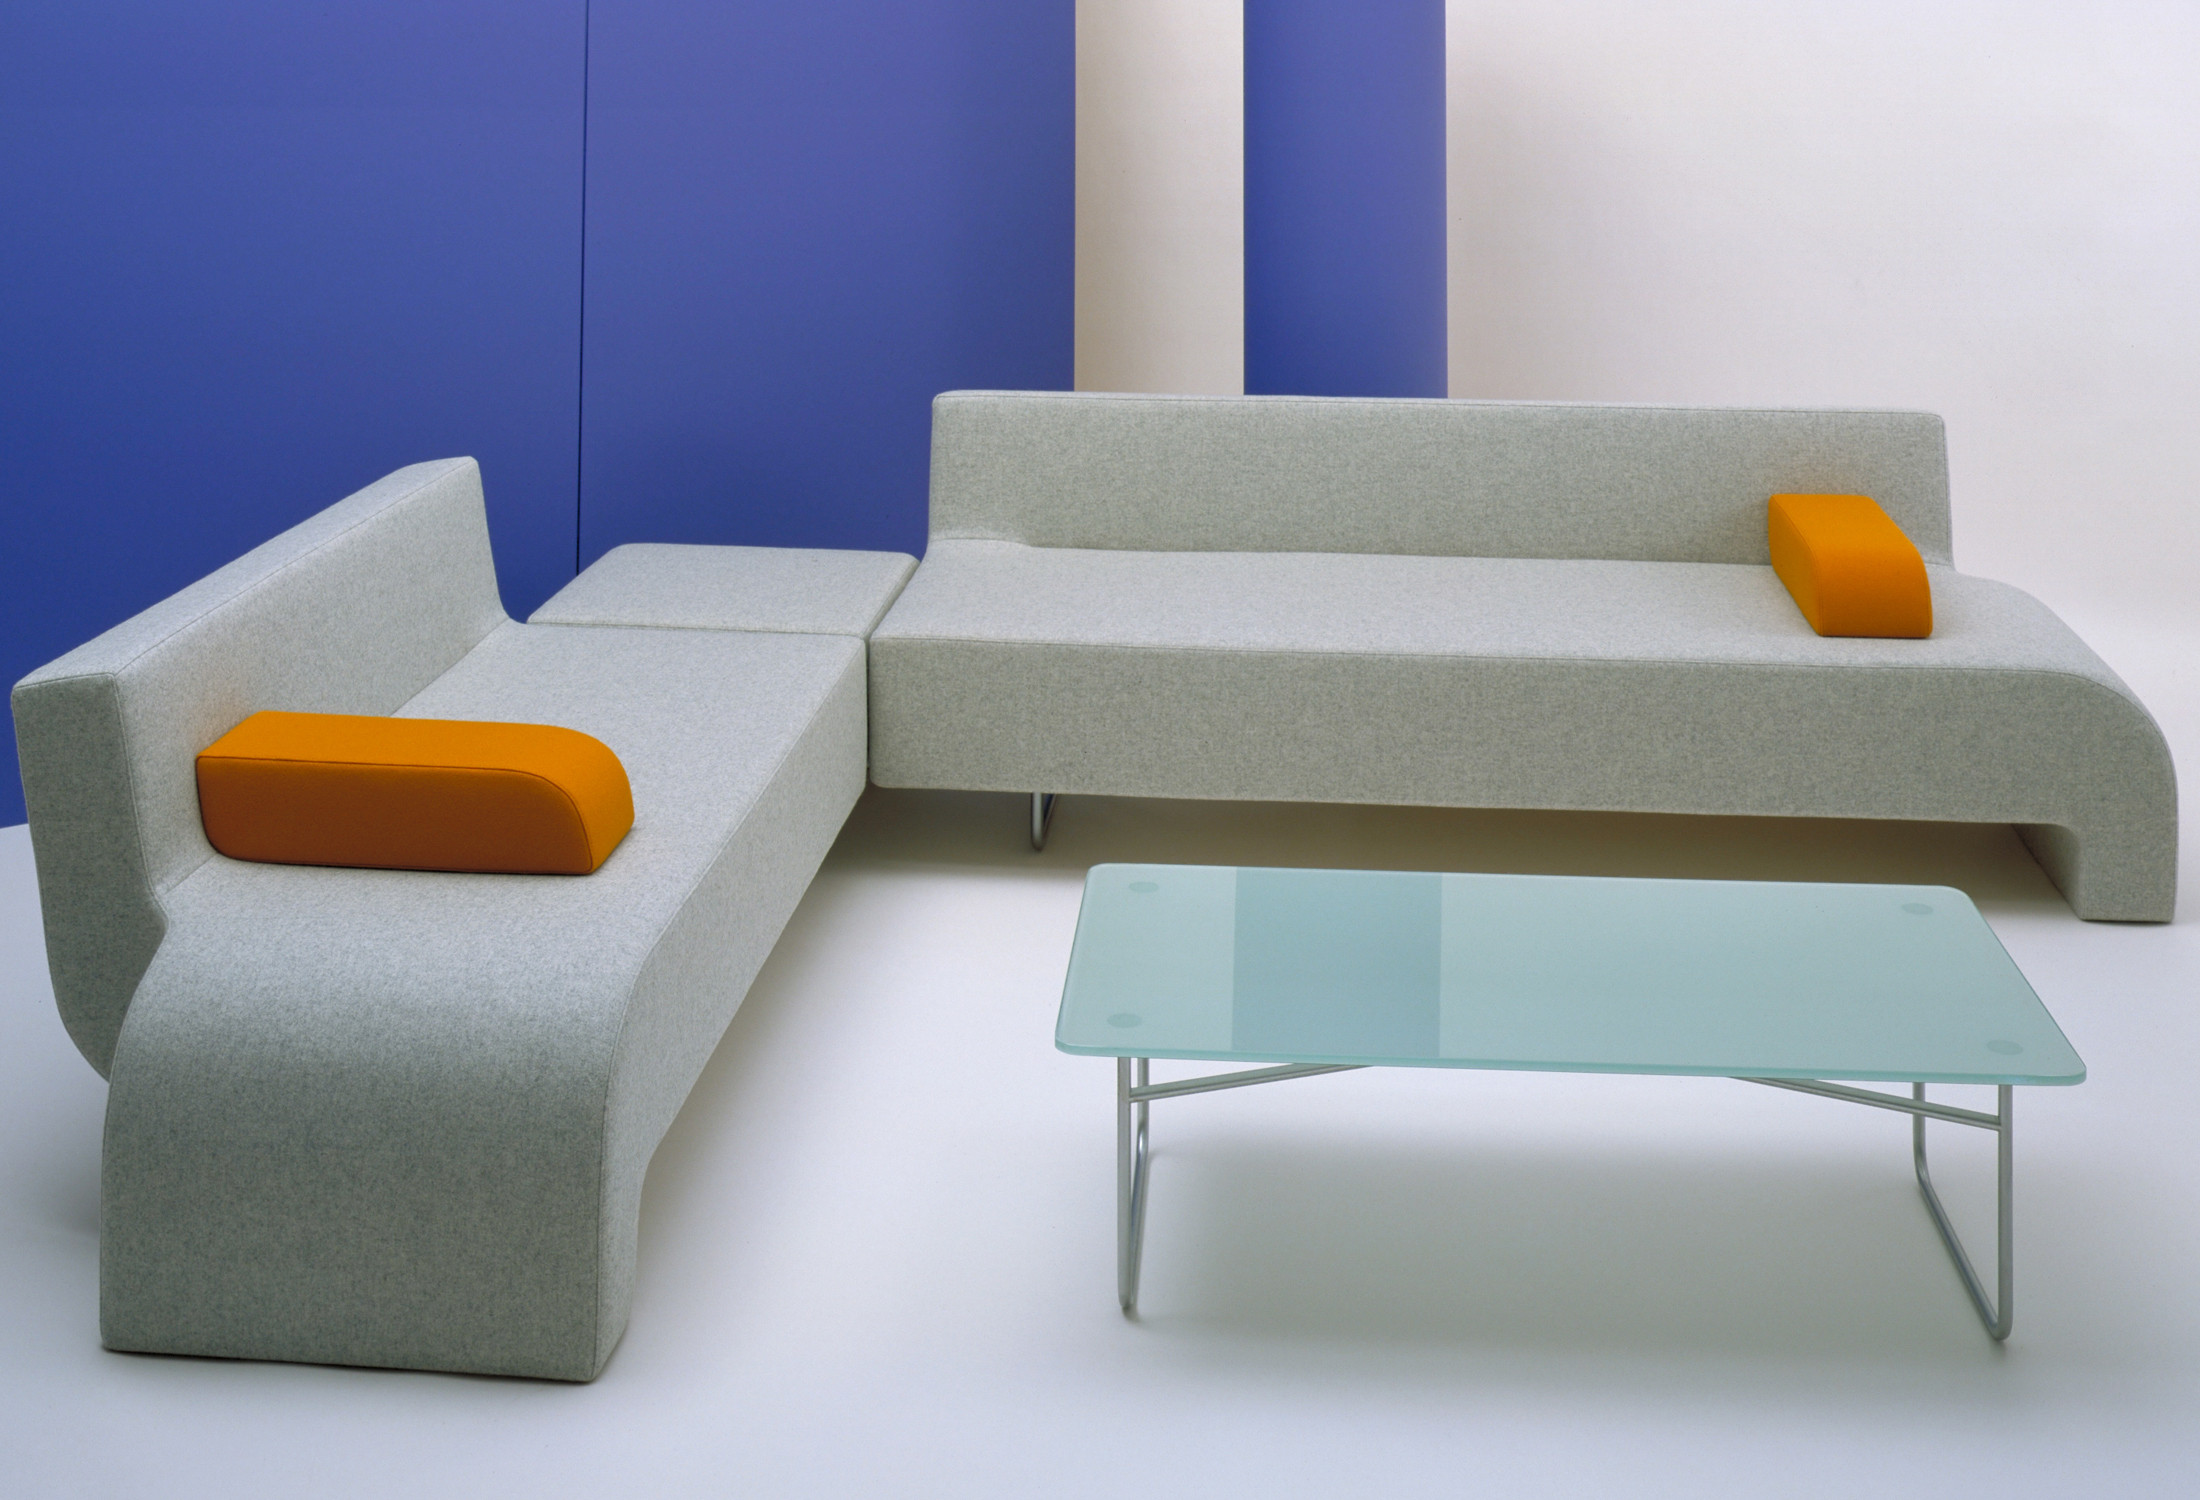 Hm30 Modular Reception Seating